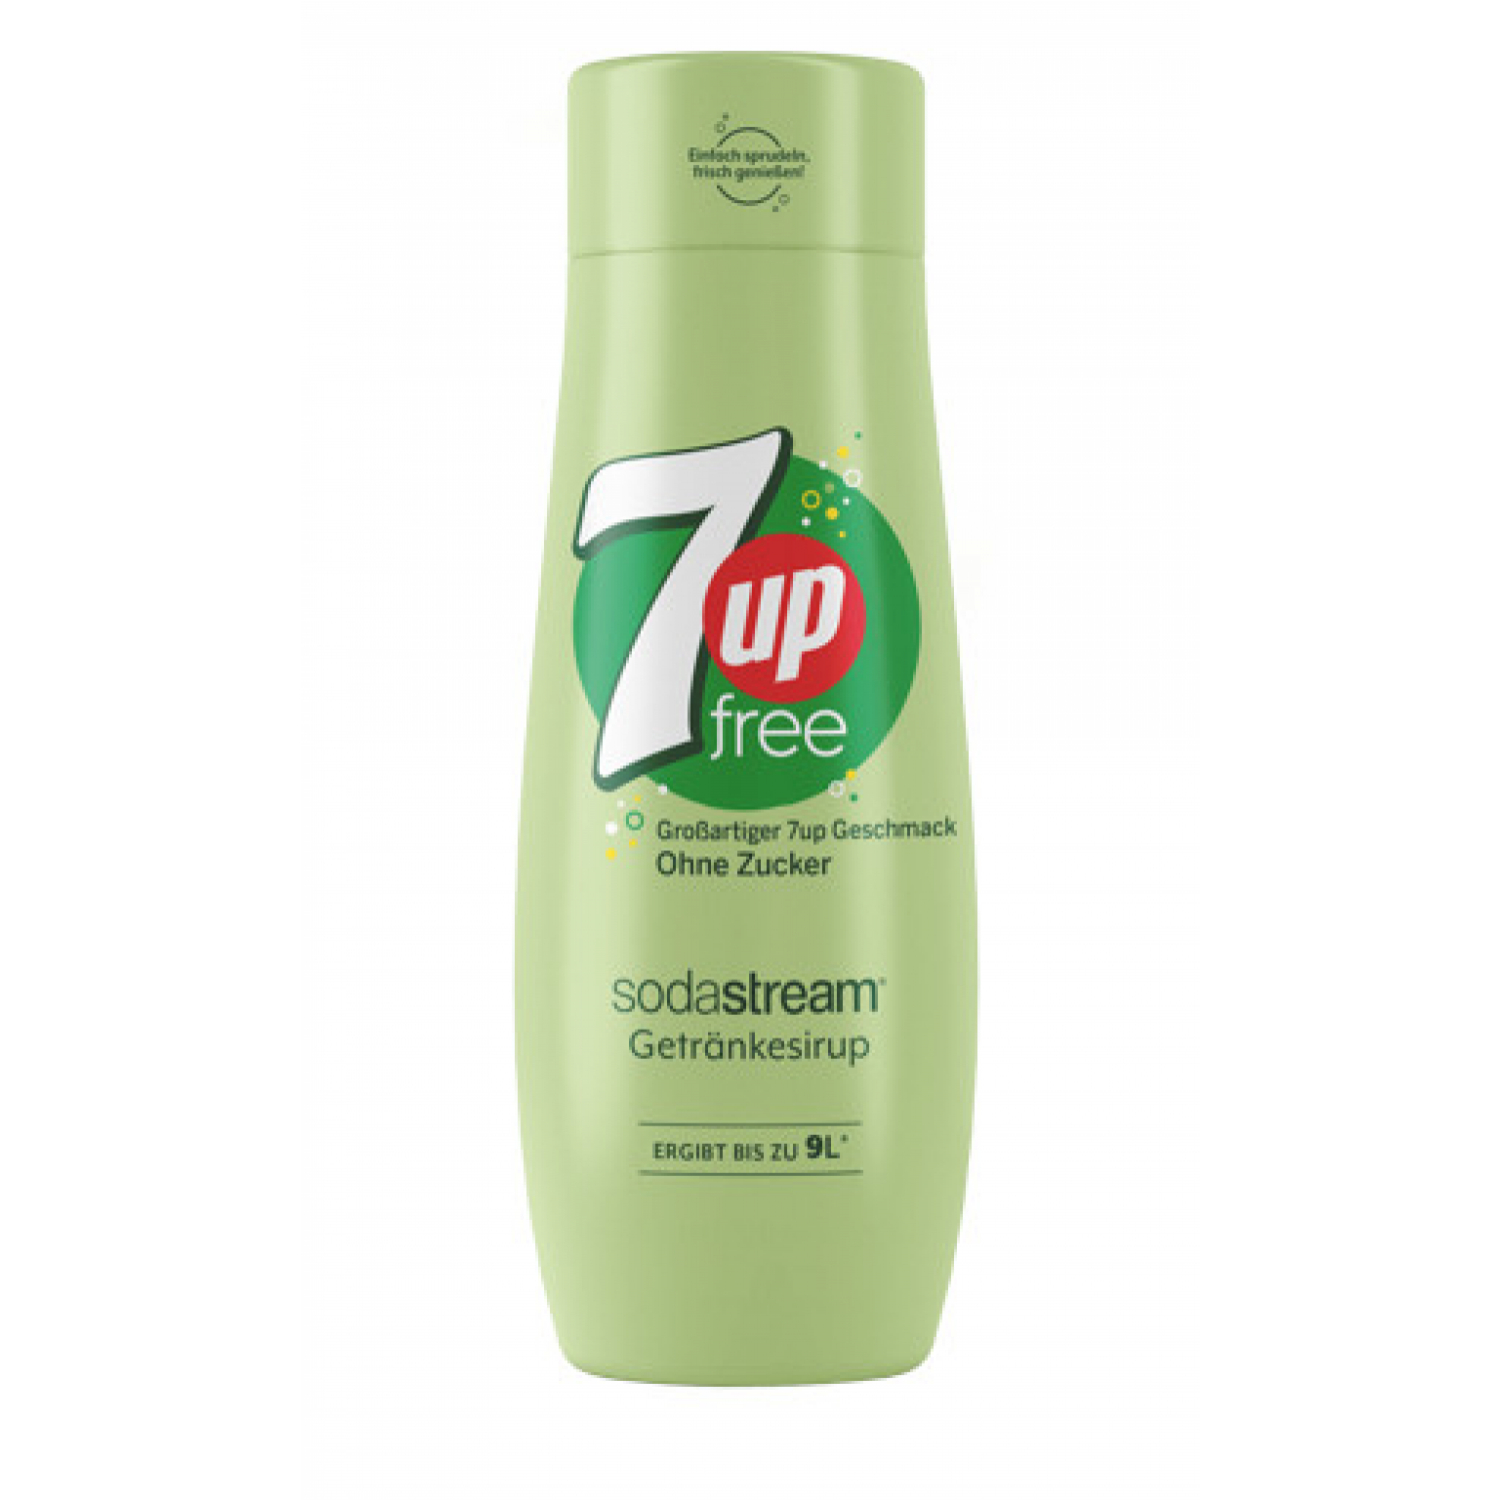 Sodastream 7 Up Diet Sirup 440 ml